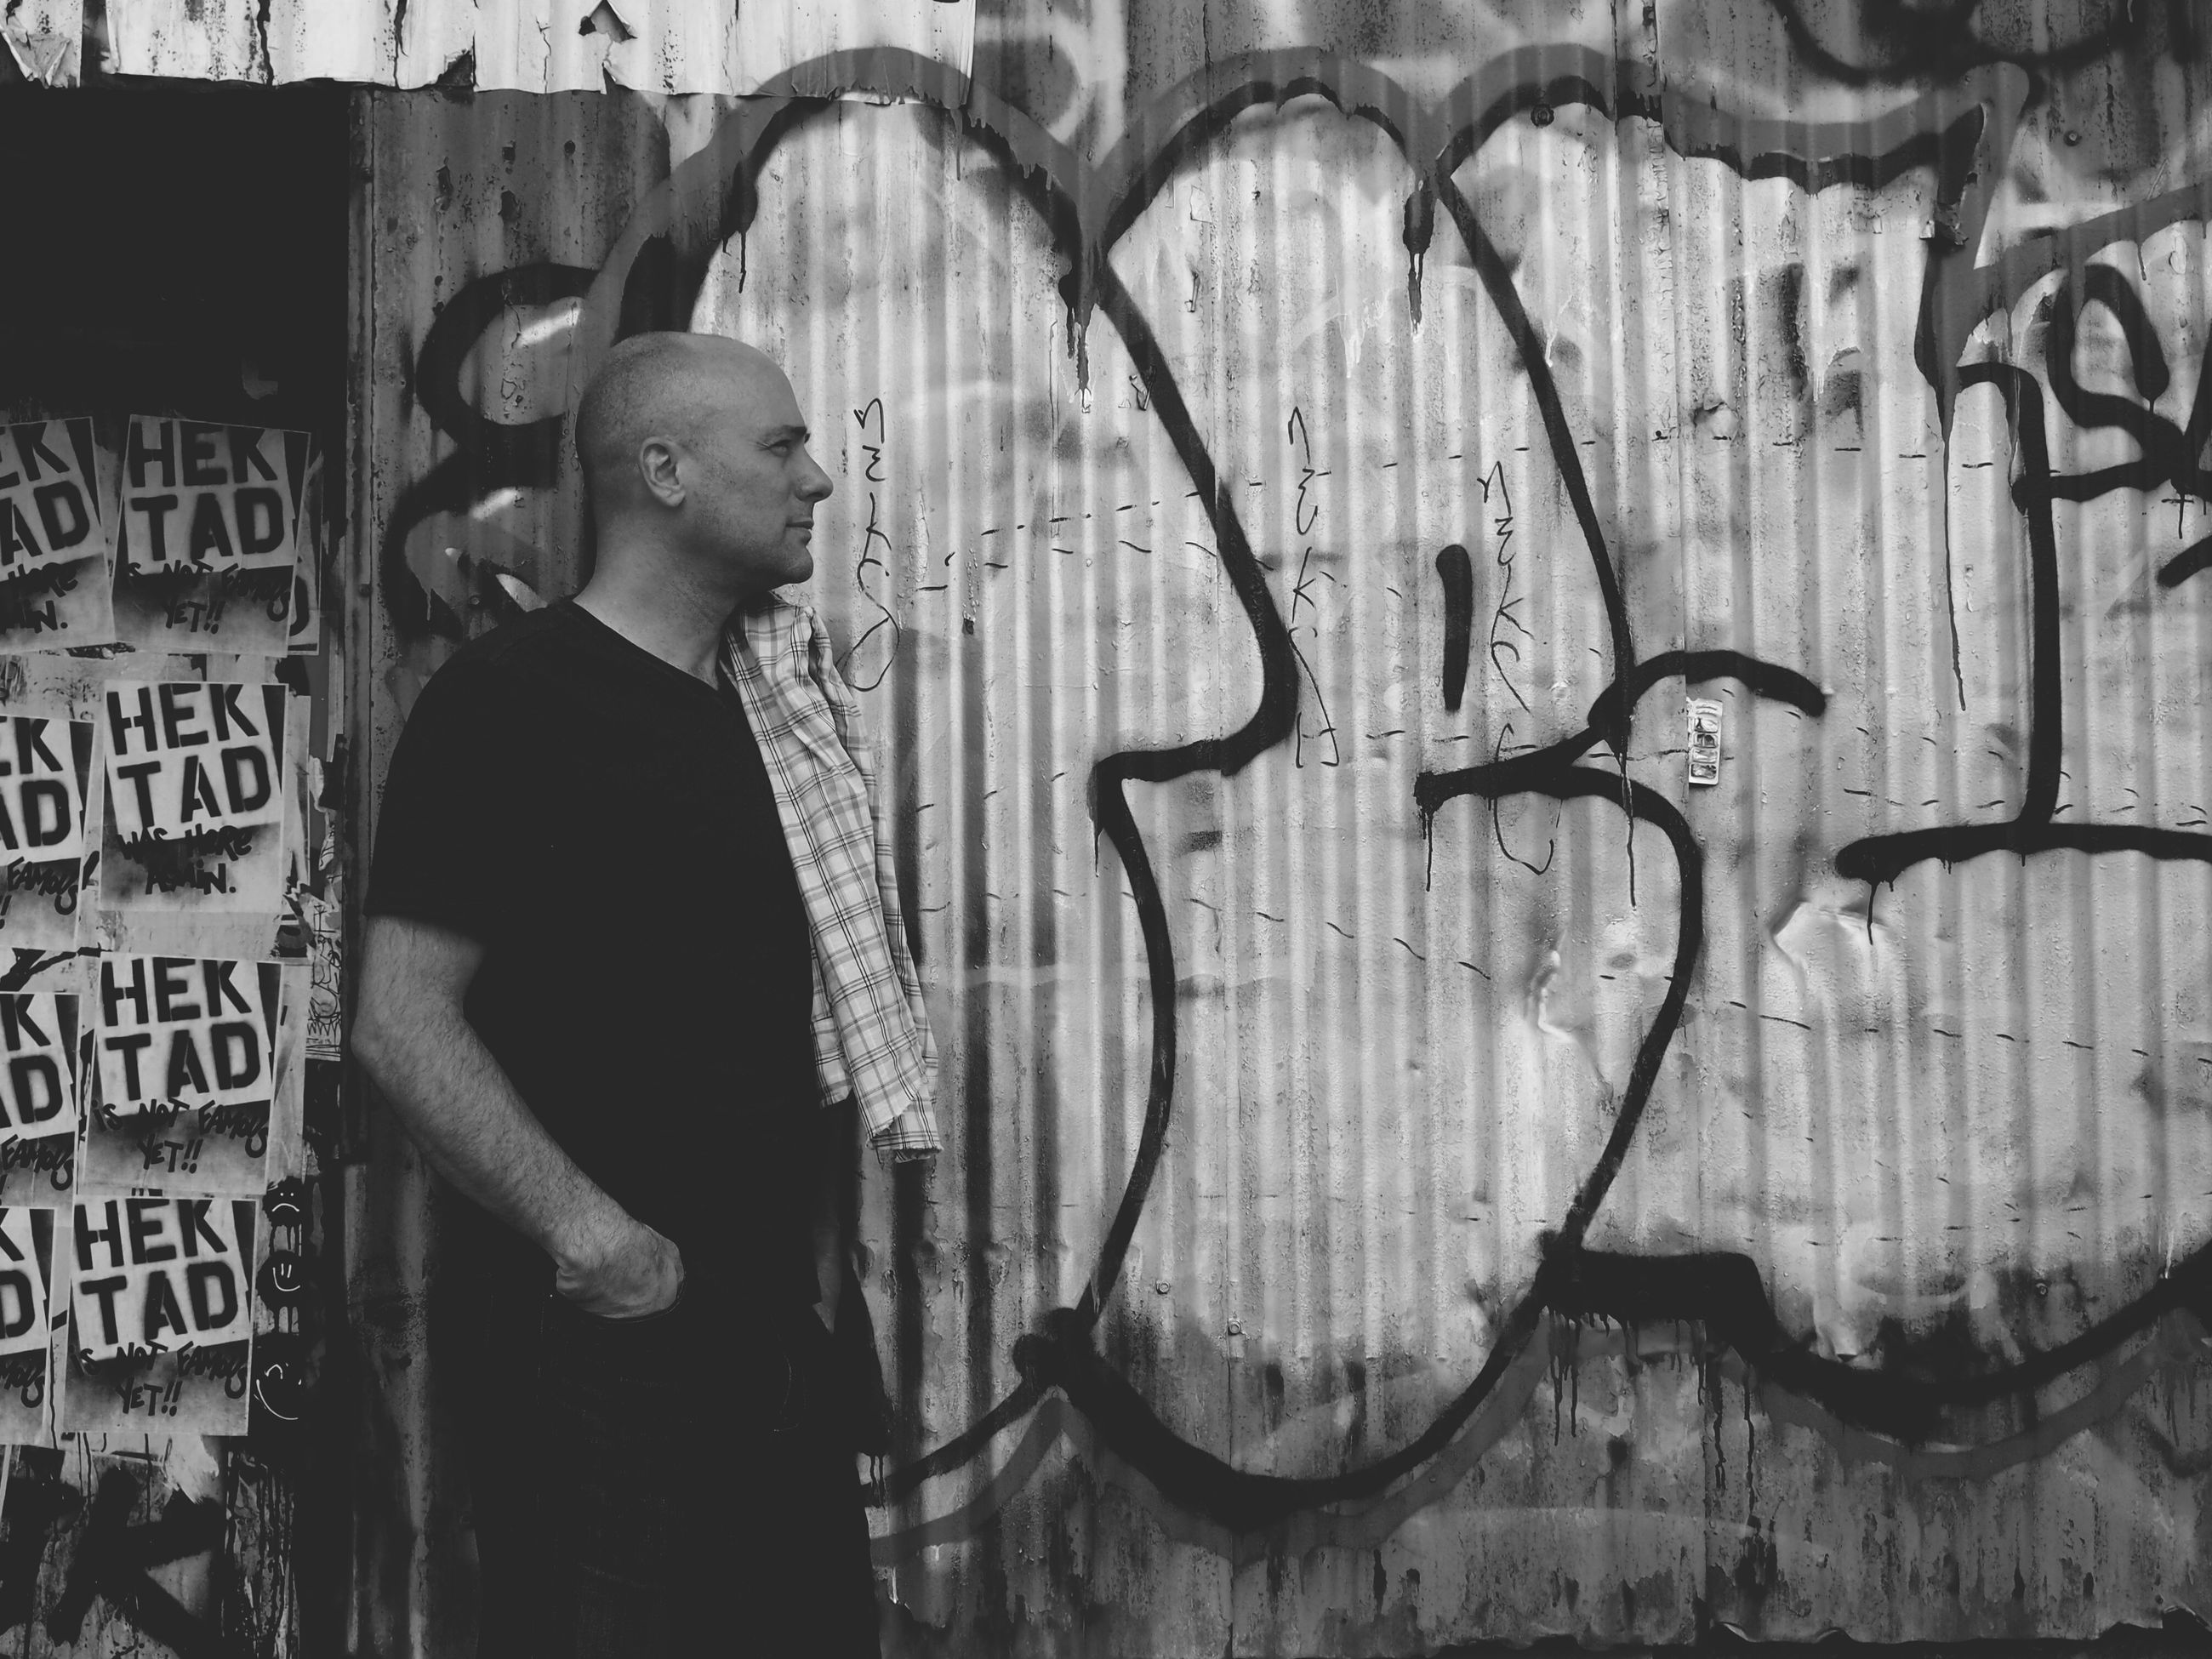 graffiti, lifestyles, text, wall - building feature, leisure activity, communication, casual clothing, western script, built structure, standing, architecture, full length, building exterior, men, art, young adult, person, front view